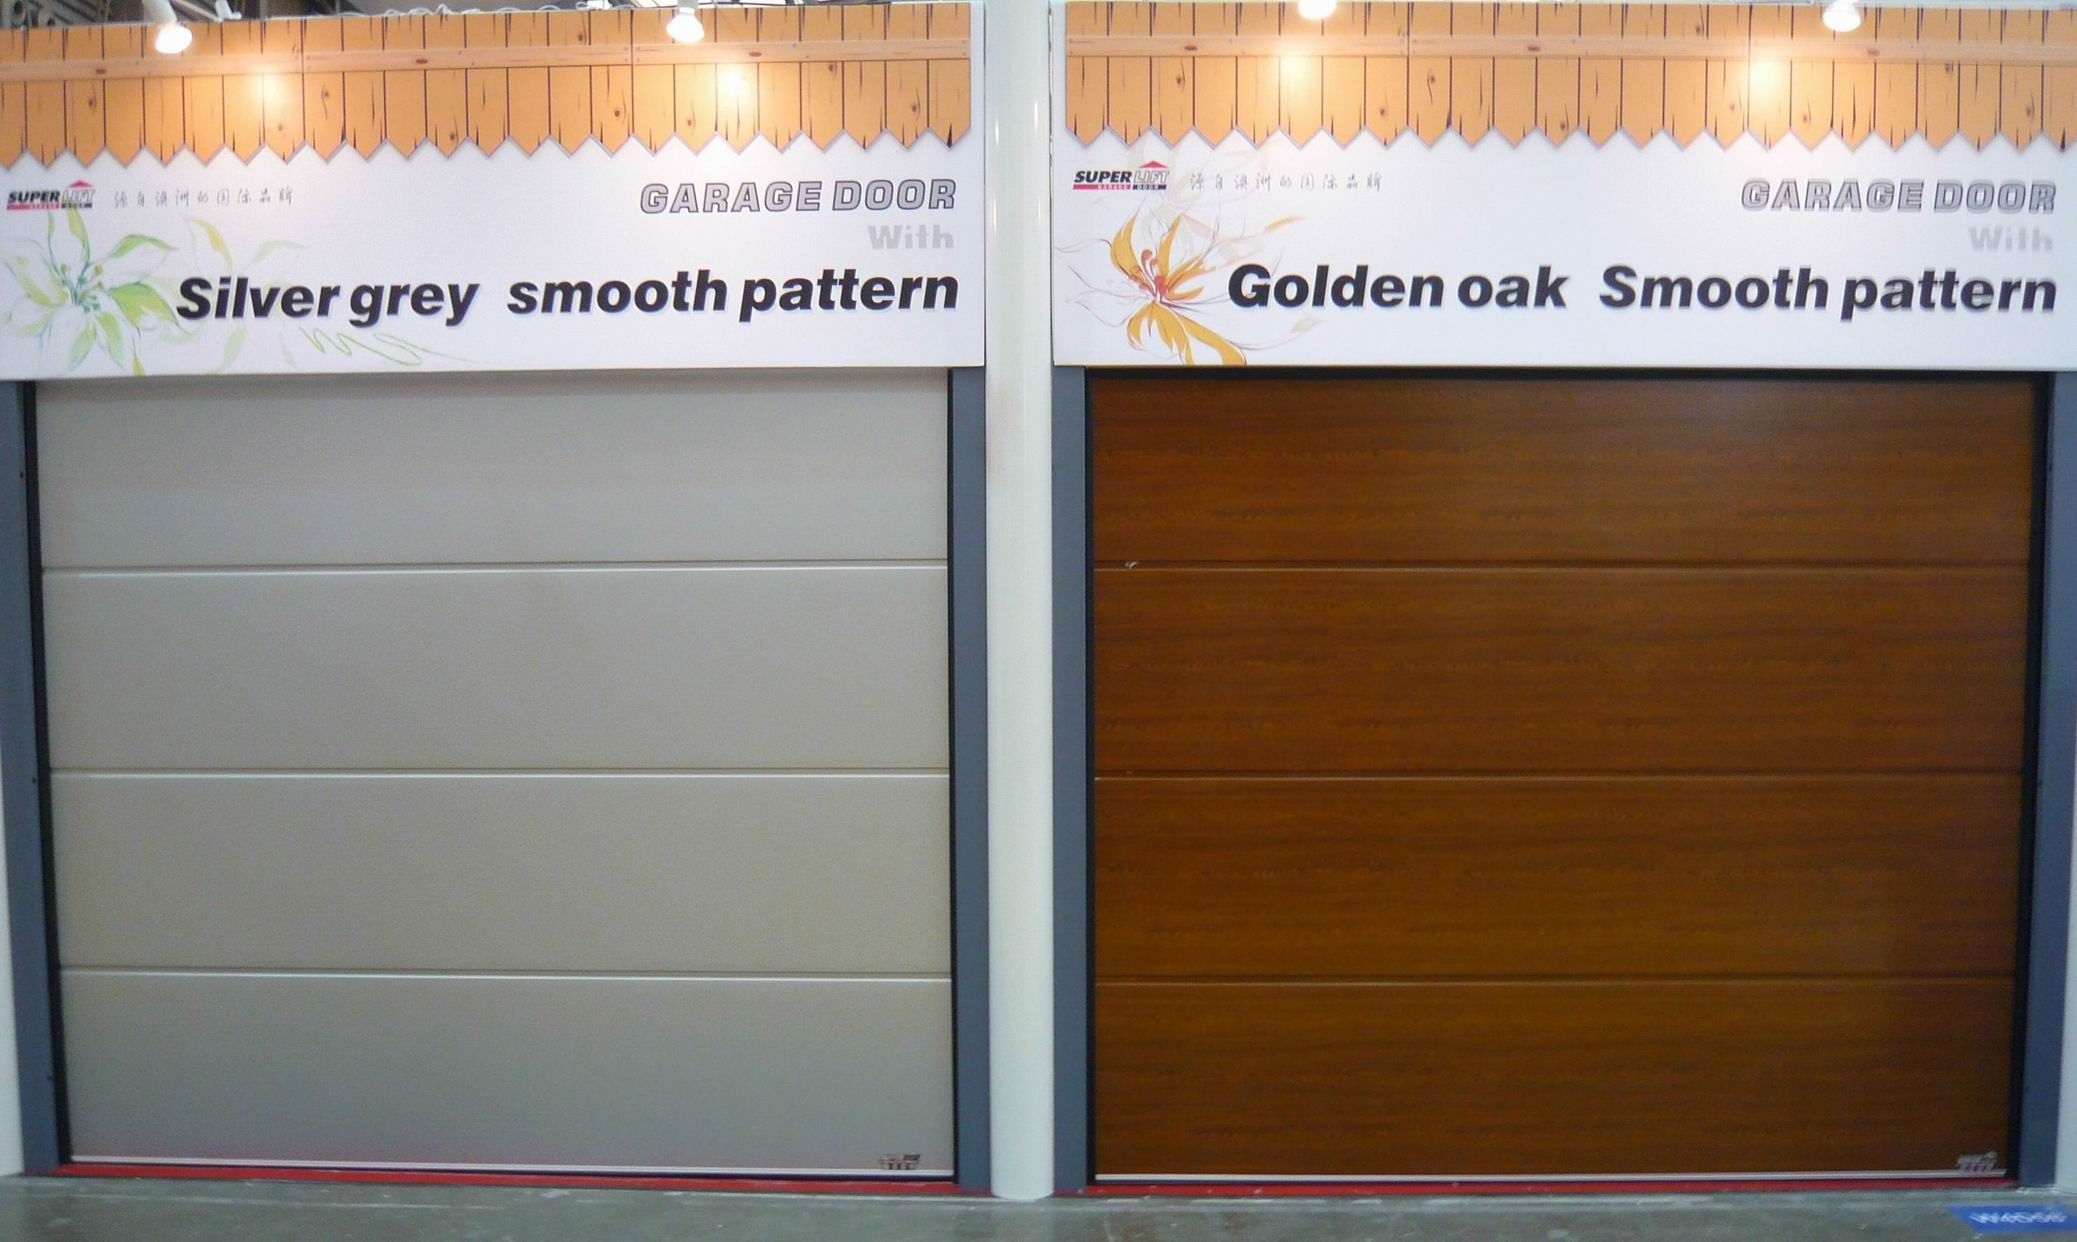 Garage Door Style Garage Door Insulation Panels Garage Door Panels Wood Garage Doors Garage Door Insulation